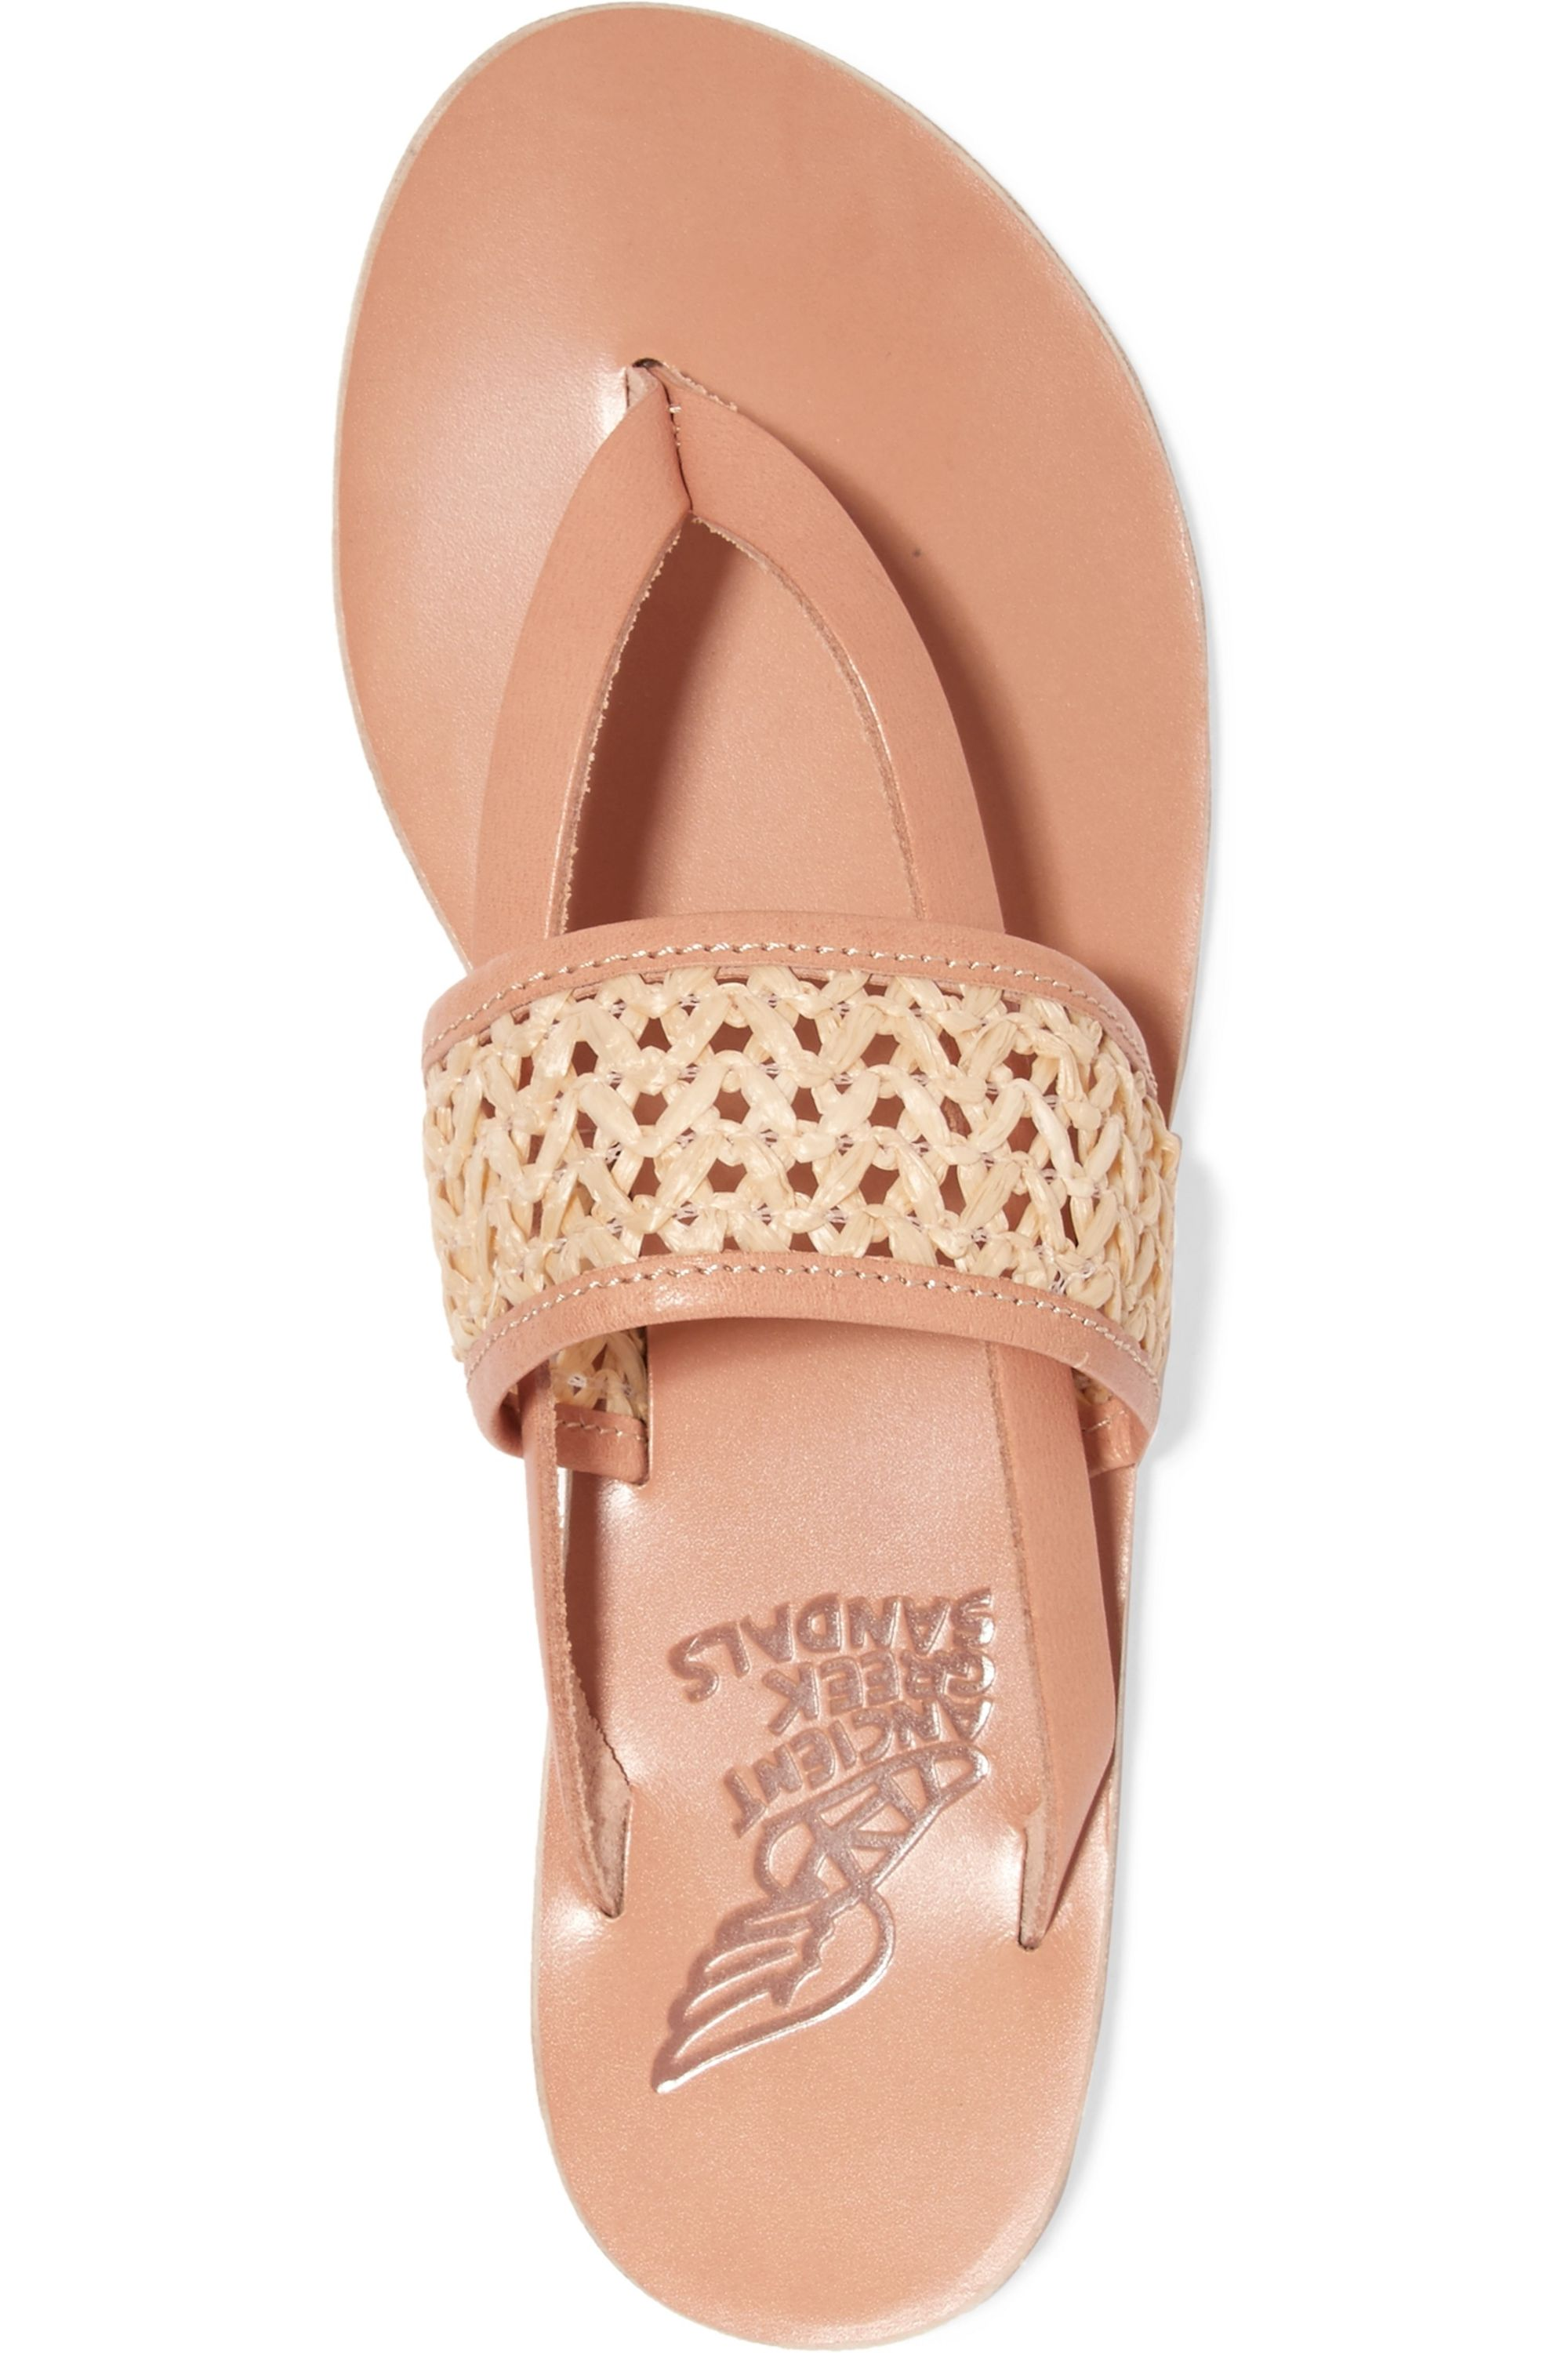 Ancient Greek Sandals Zenobia woven raffia and leather sandals